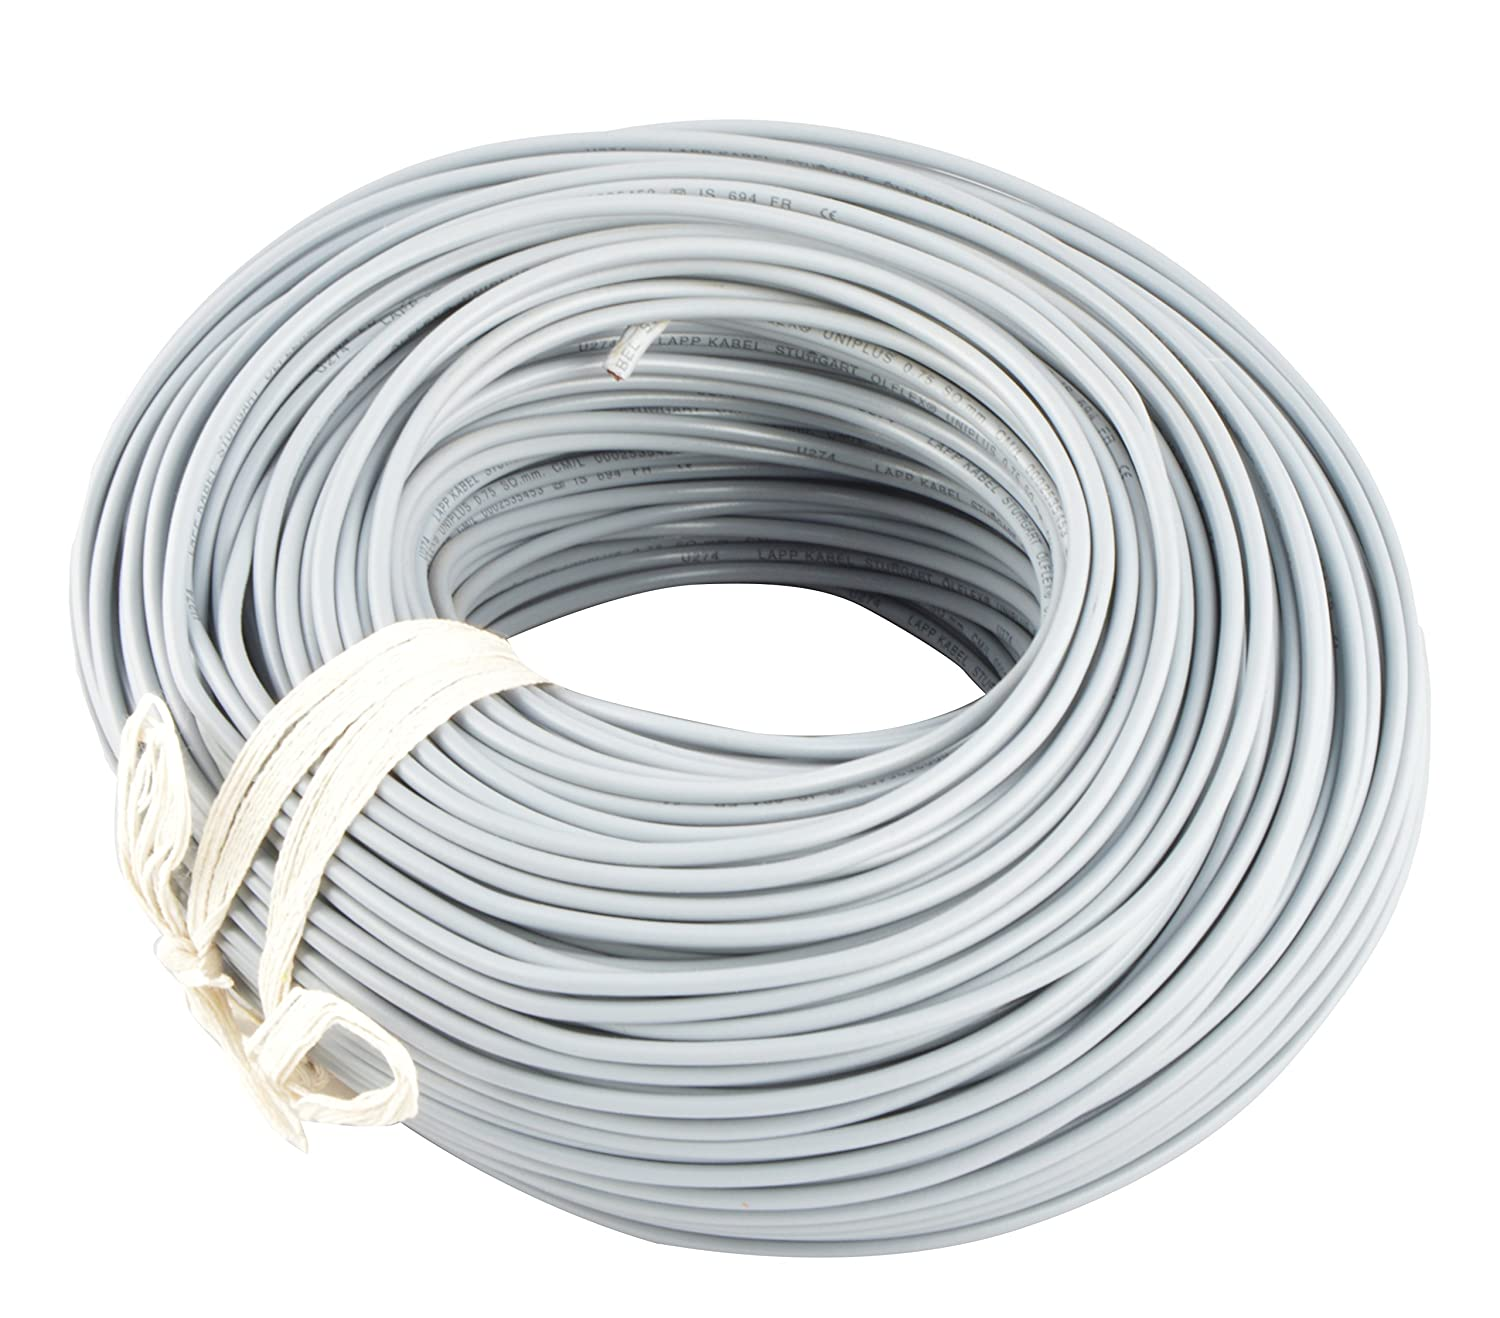 Lapp Kabel 25 Sq Mm Electrical Cable Grey 1 Piece Cables Plus Usa Fiber Optic Glass Attributes And Characteristics Home Improvement